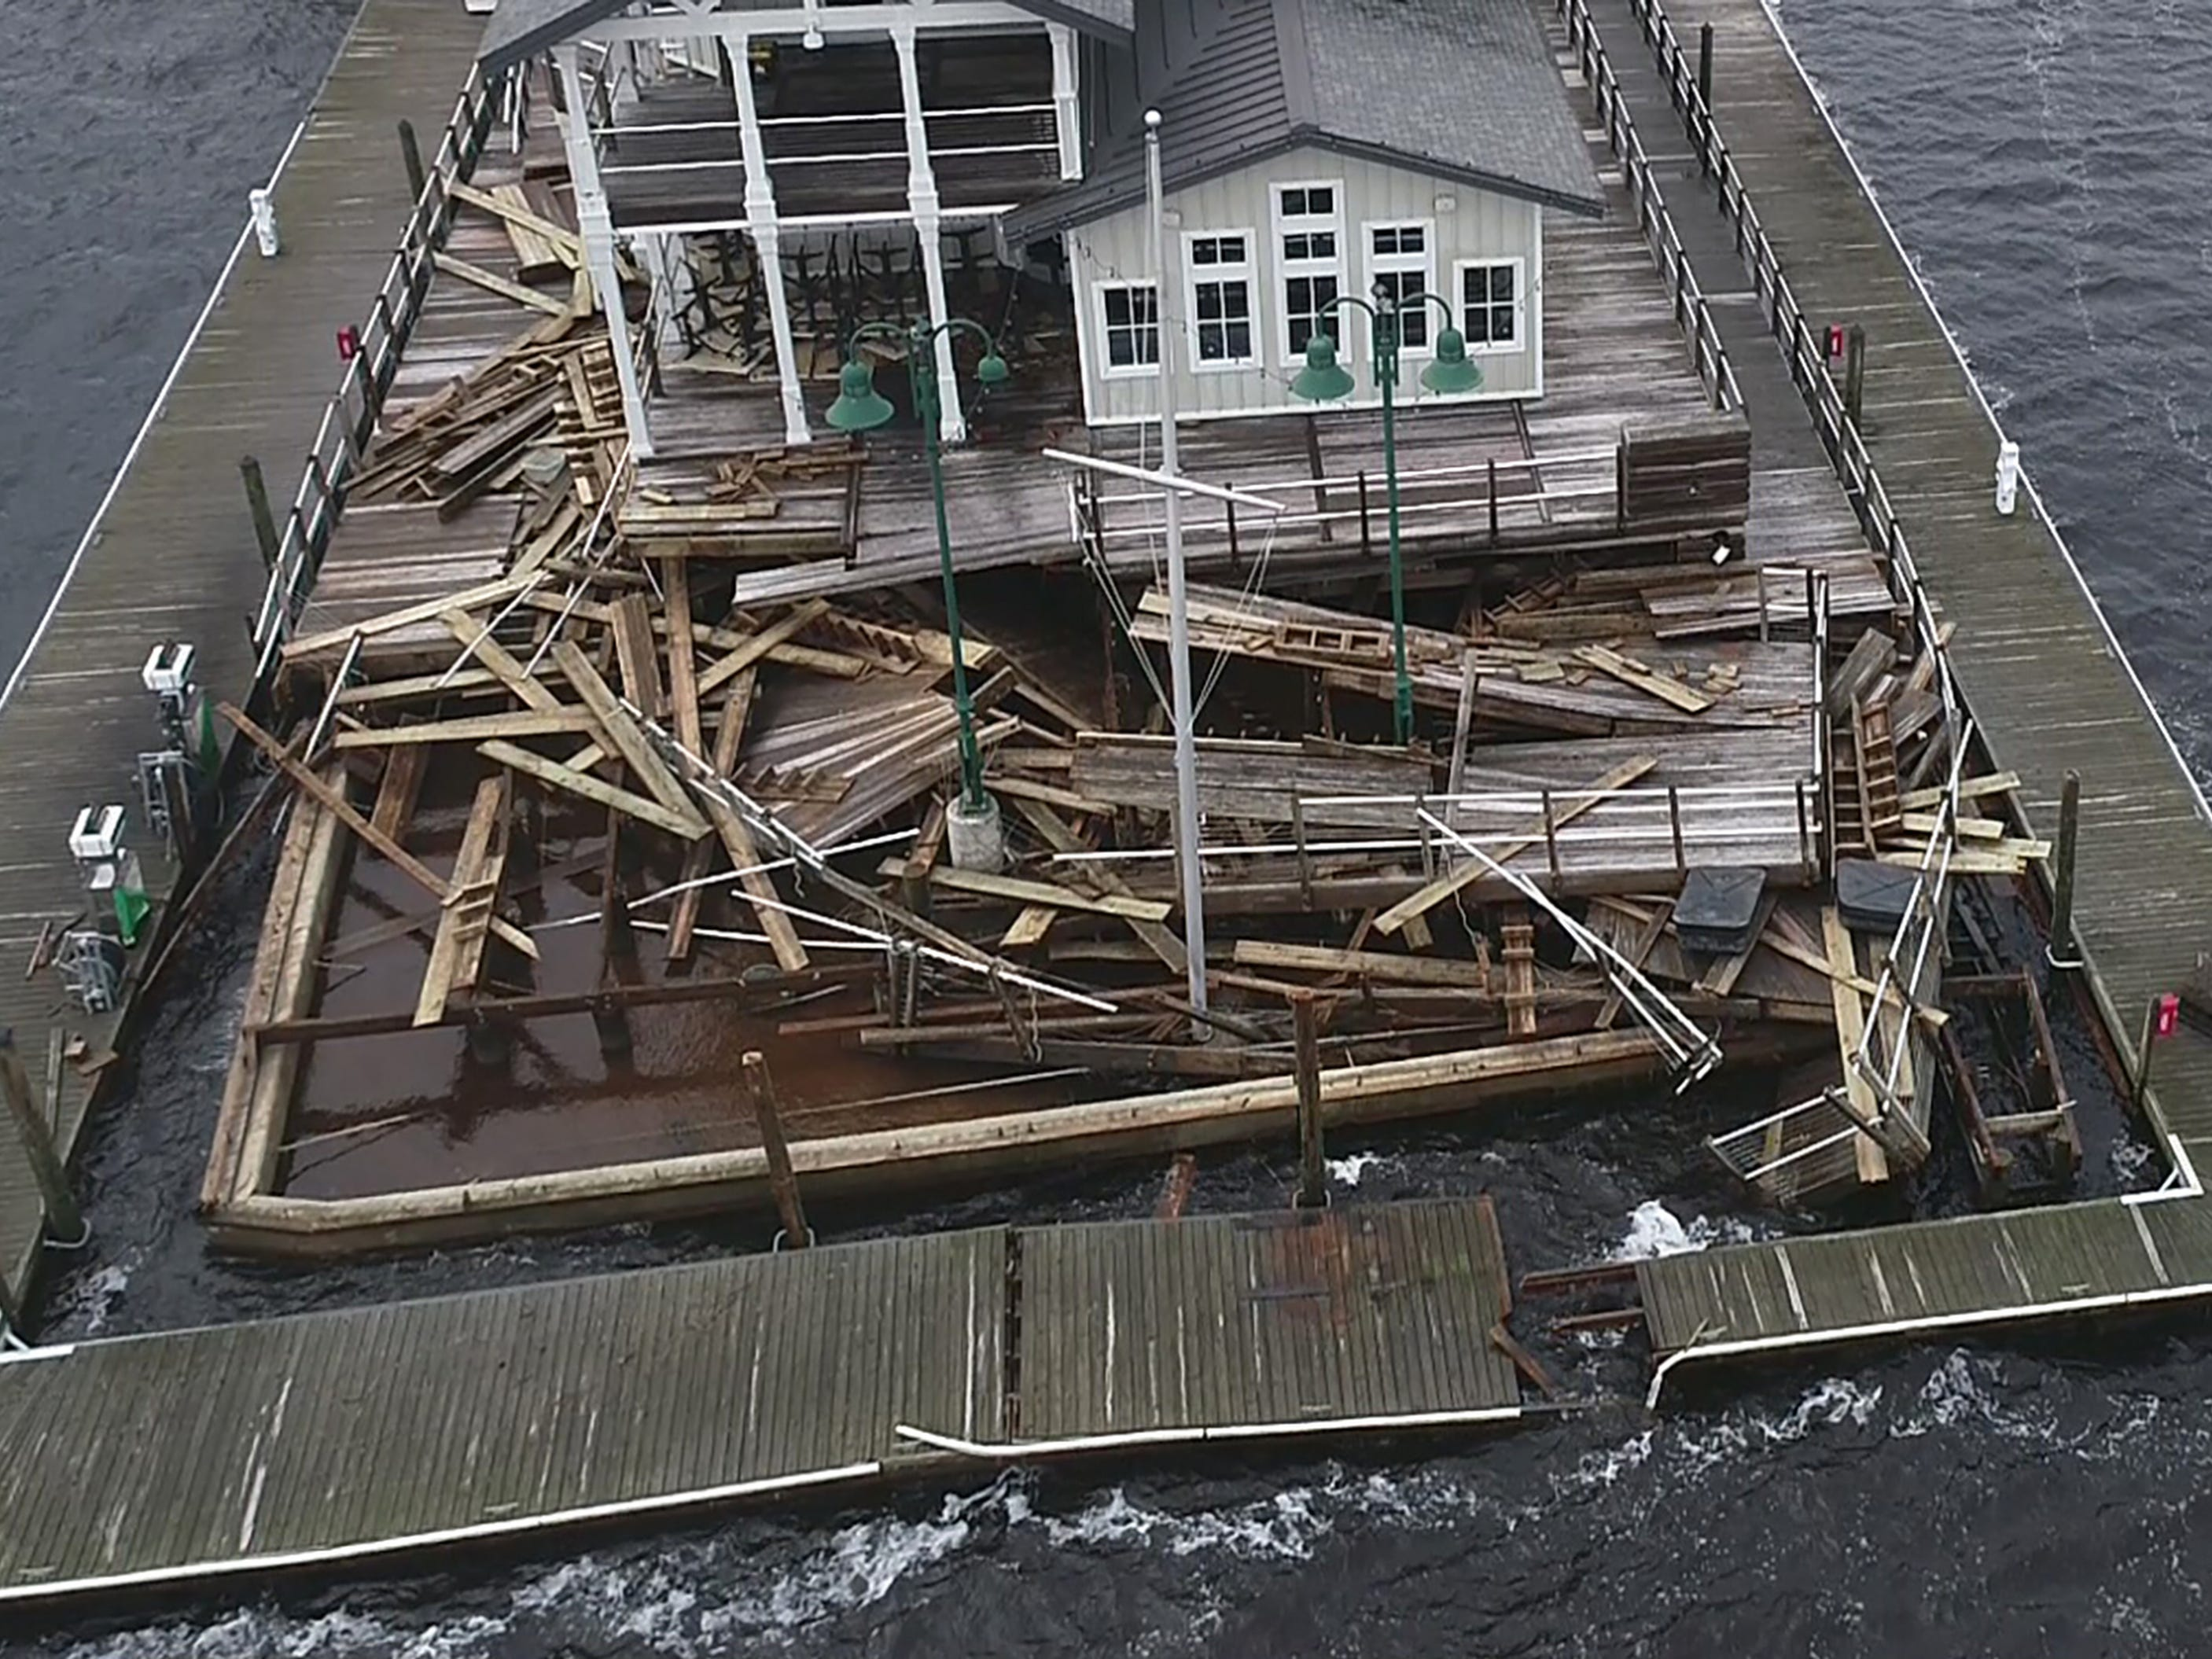 The Persimmons Waterfront Restaurant suffered storm damage from Hurricane Florence in downtown New Bern, N.C. on Sunday morning on Sept. 16, 2018.